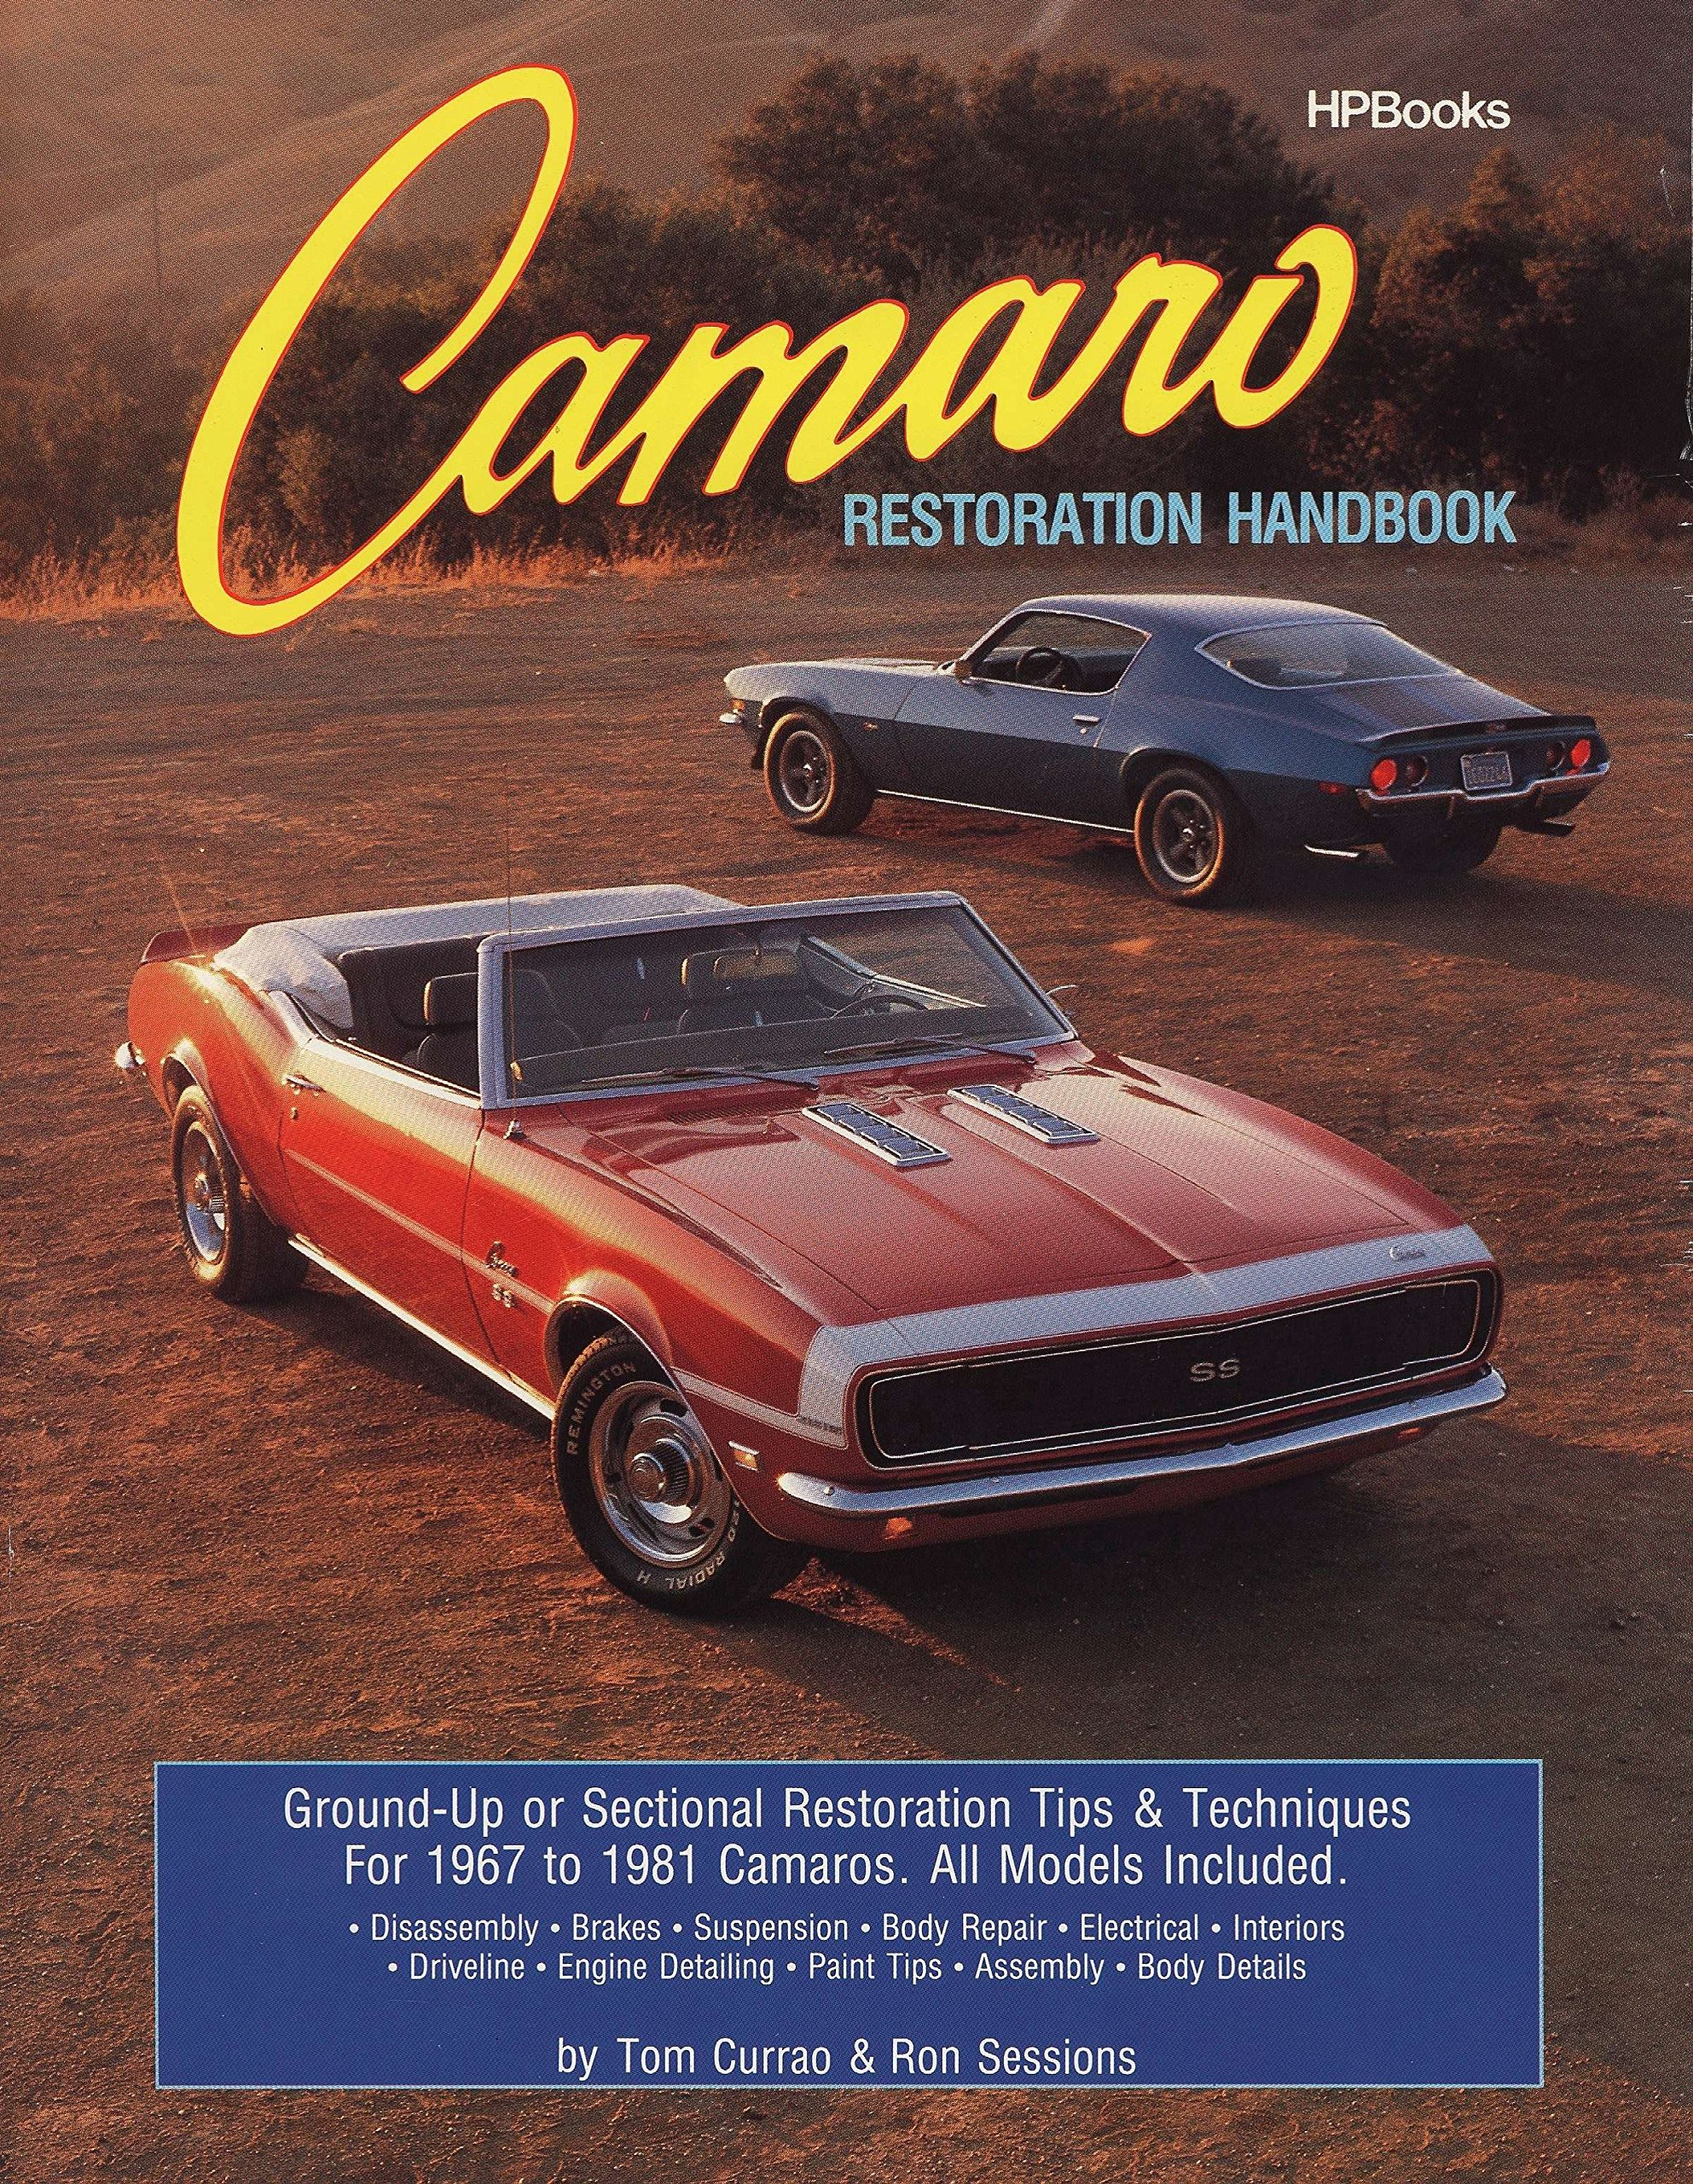 Camaro Restoration Handbook Hpbooks 758 Ron Sessions 0075478013753 2nd Generation Firebird 8 Track Wiring Diagram Books